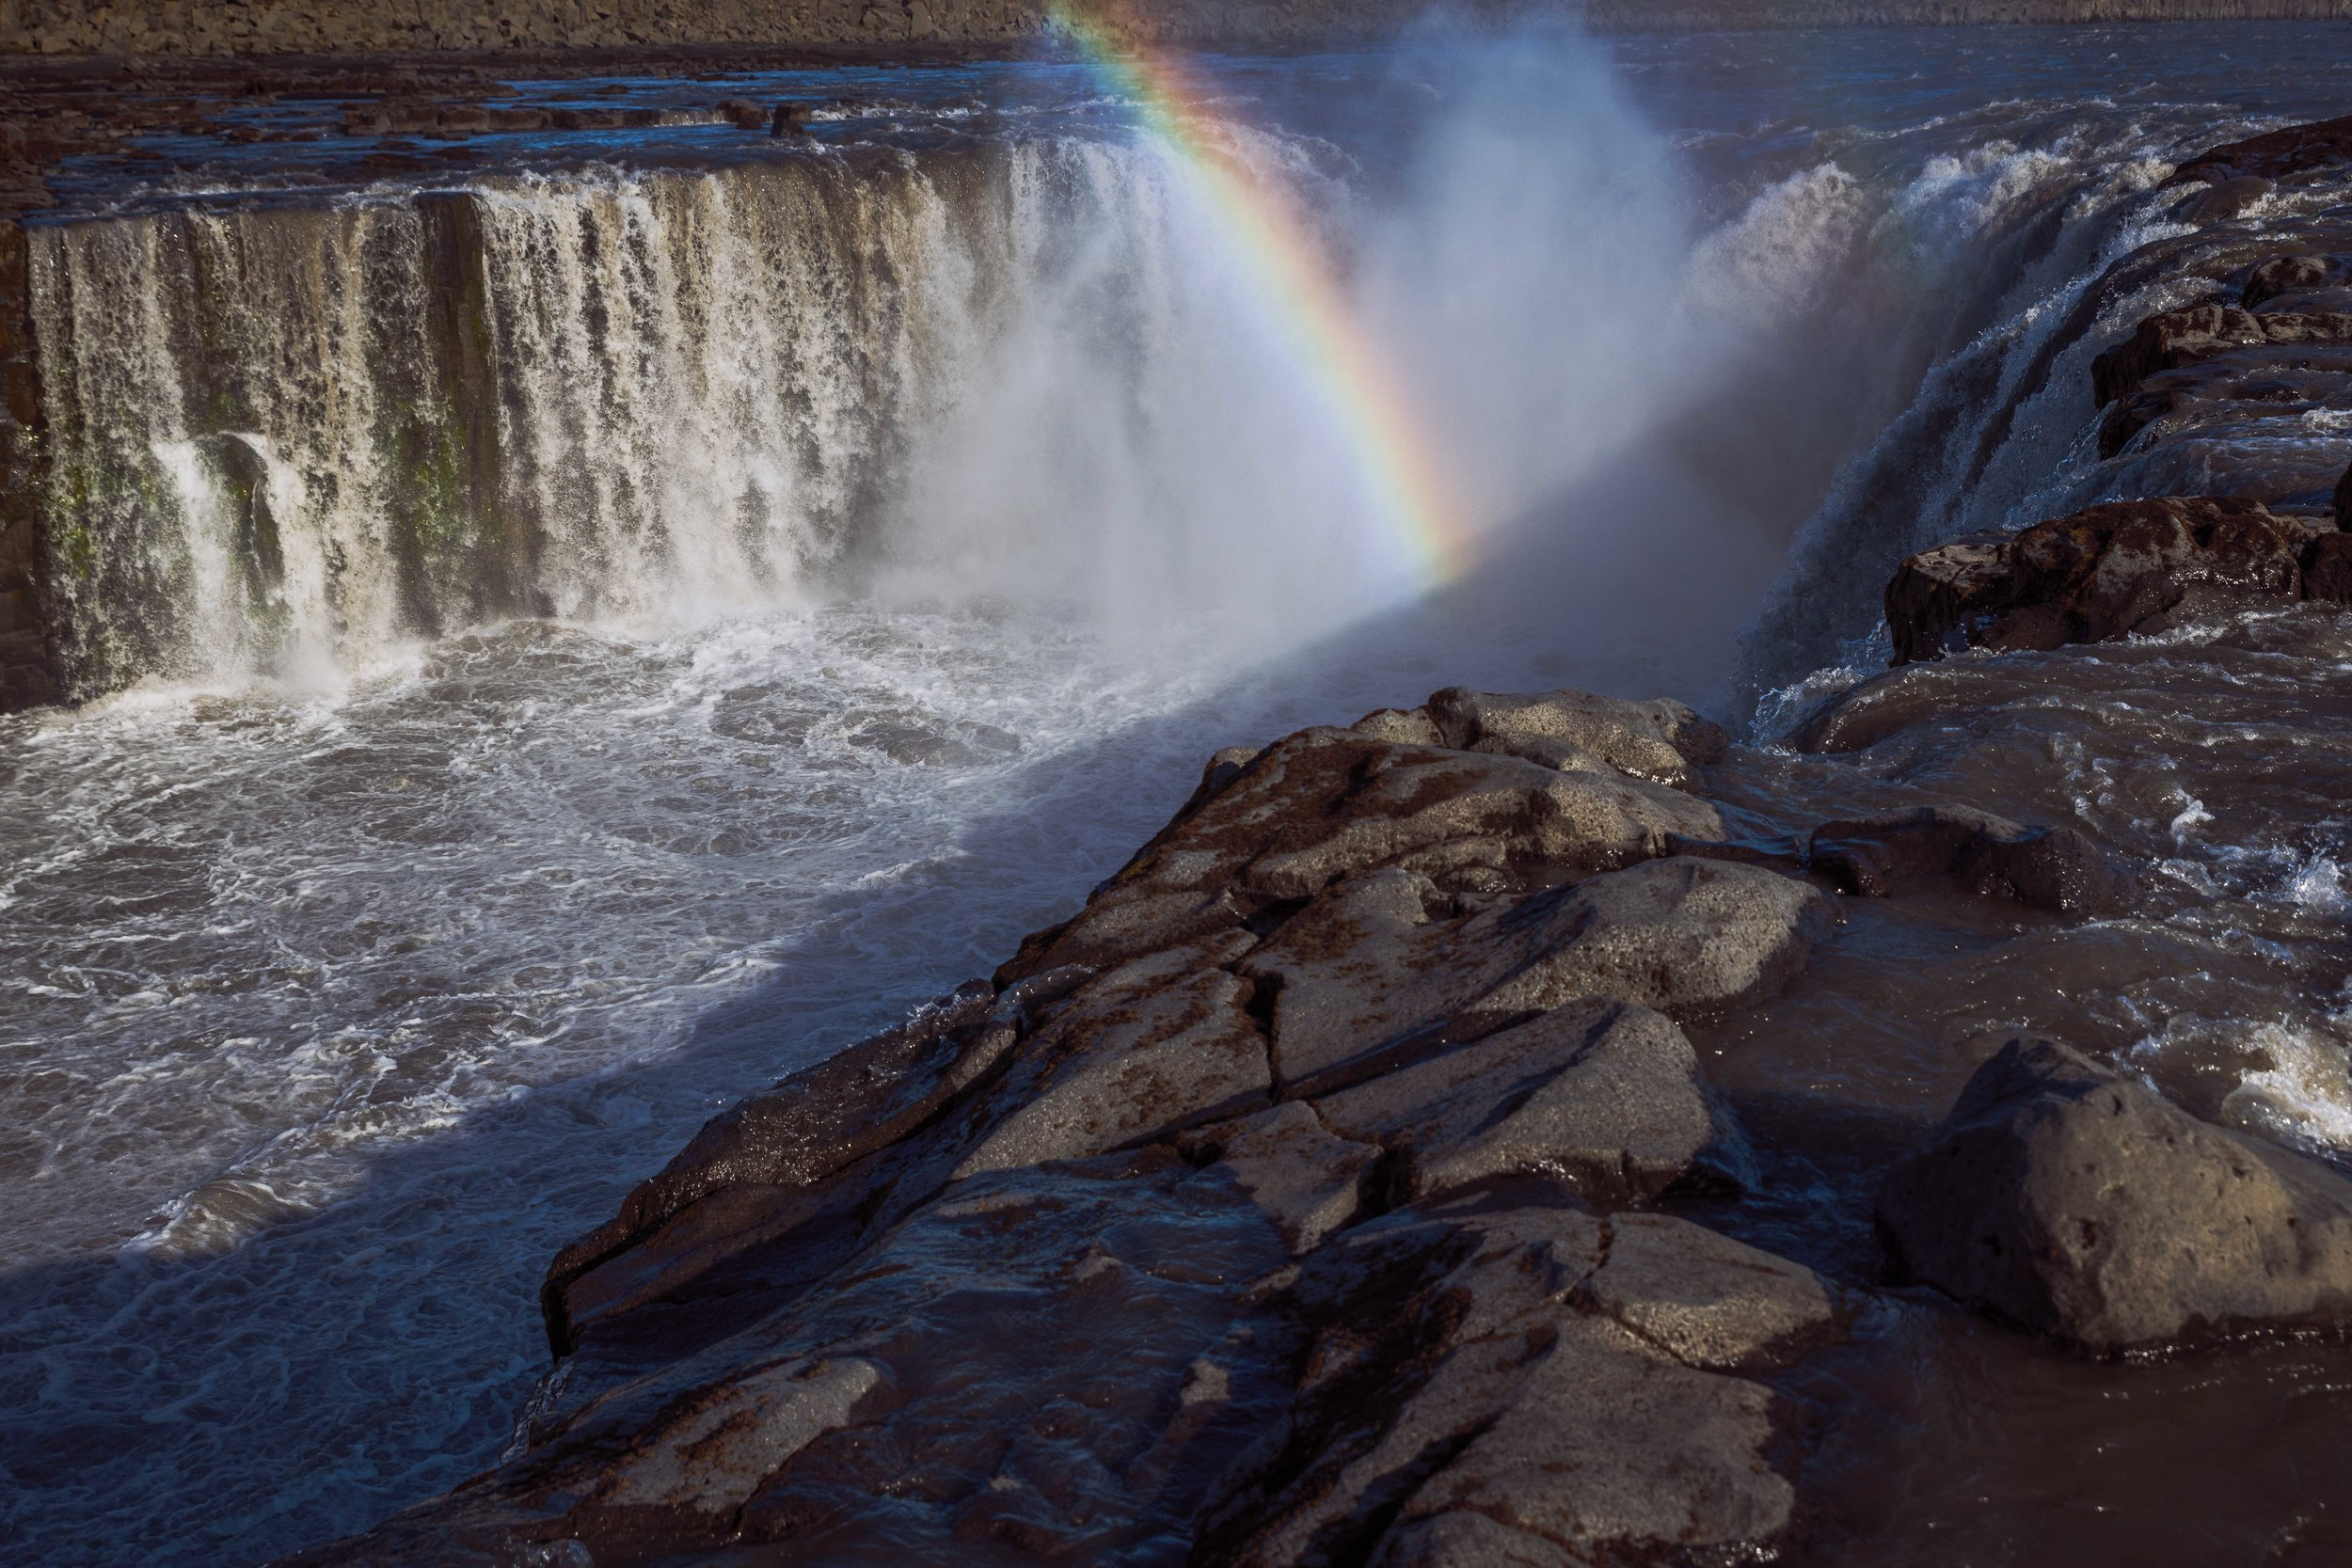 A rainbow formed by the mist at Dettifoss